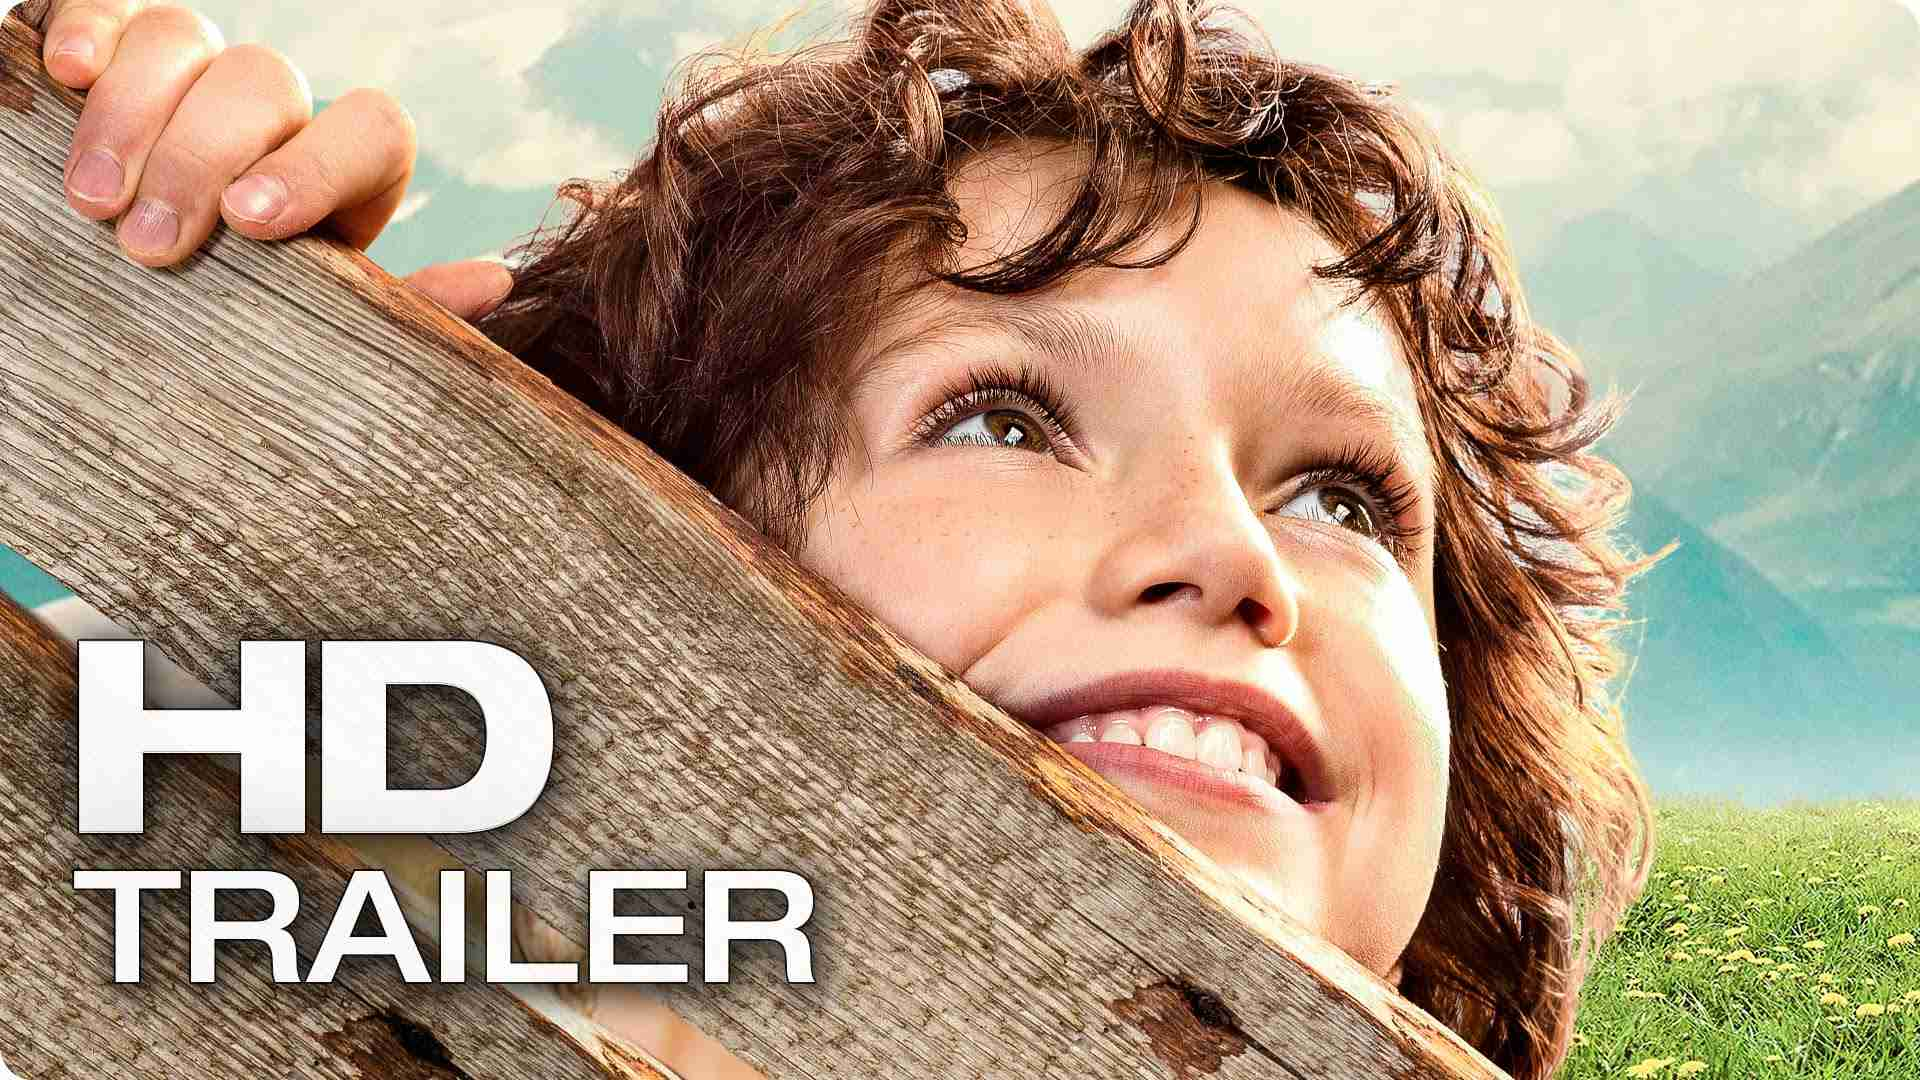 HEIDI Trailer (2015) - YouTube